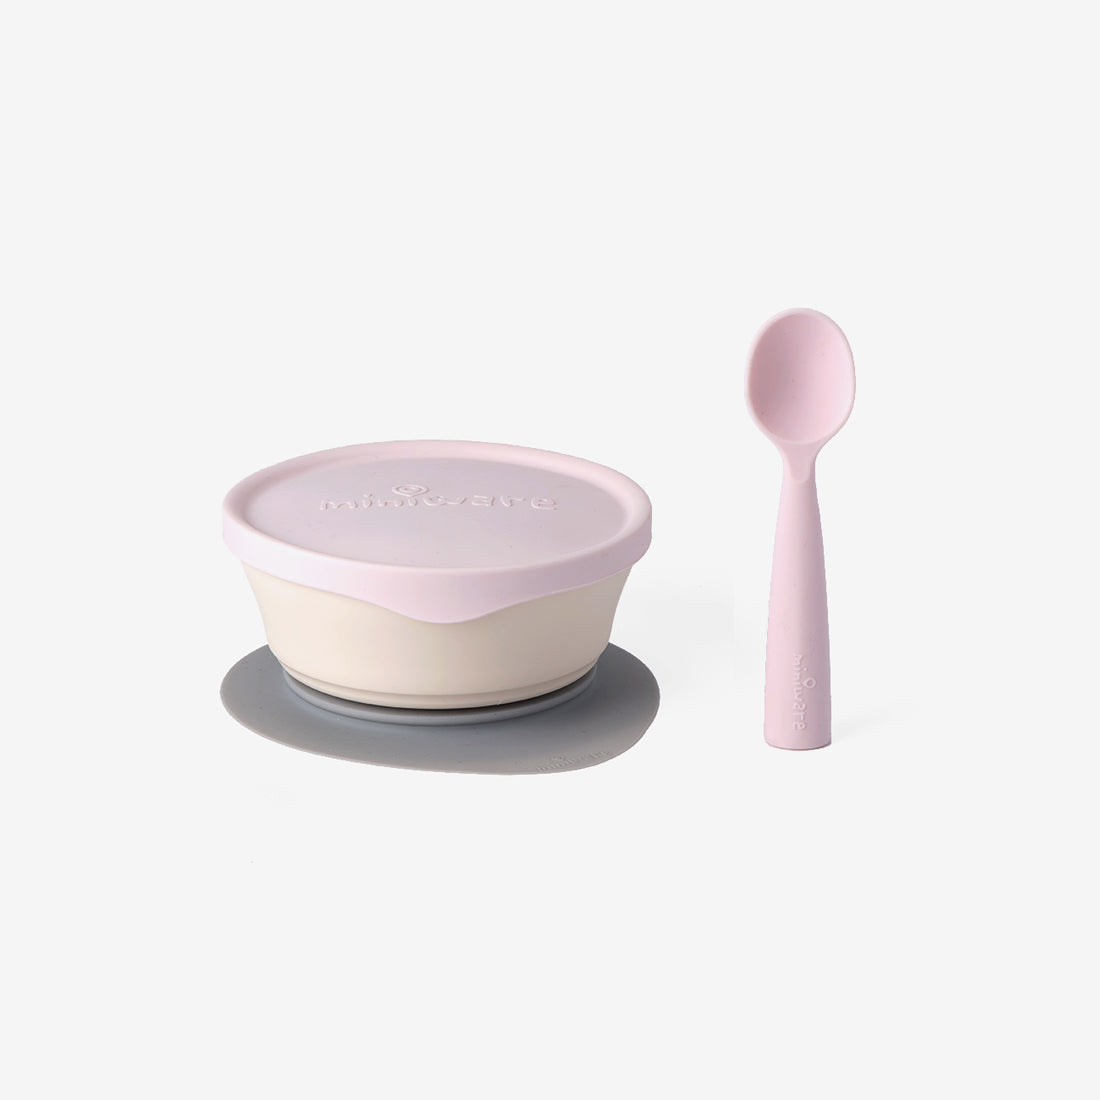 First Bites PLA Kid's Dish Set - Cotton Candy